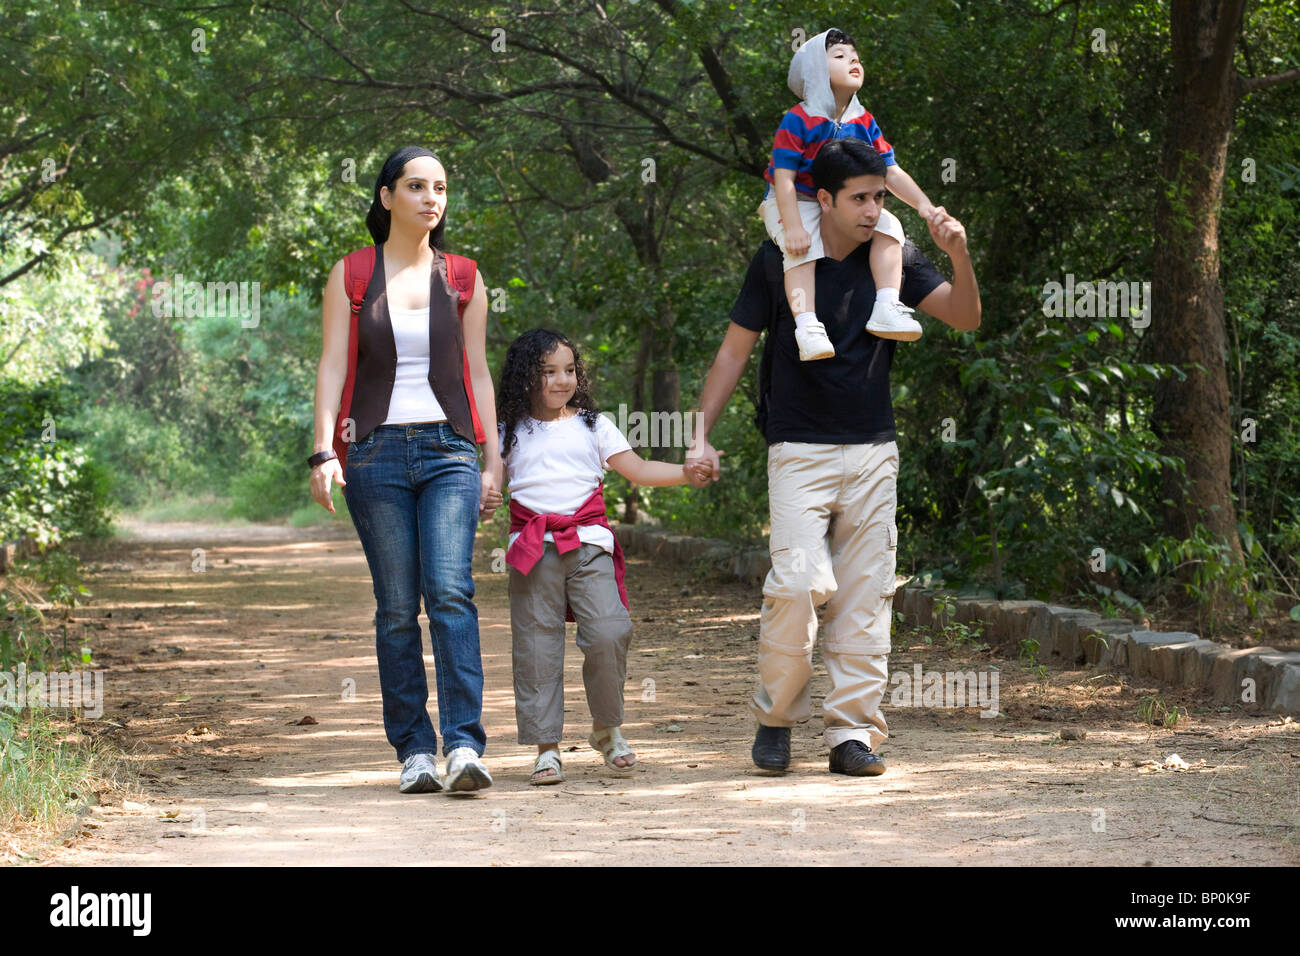 Family going for a walk in a park - Stock Image